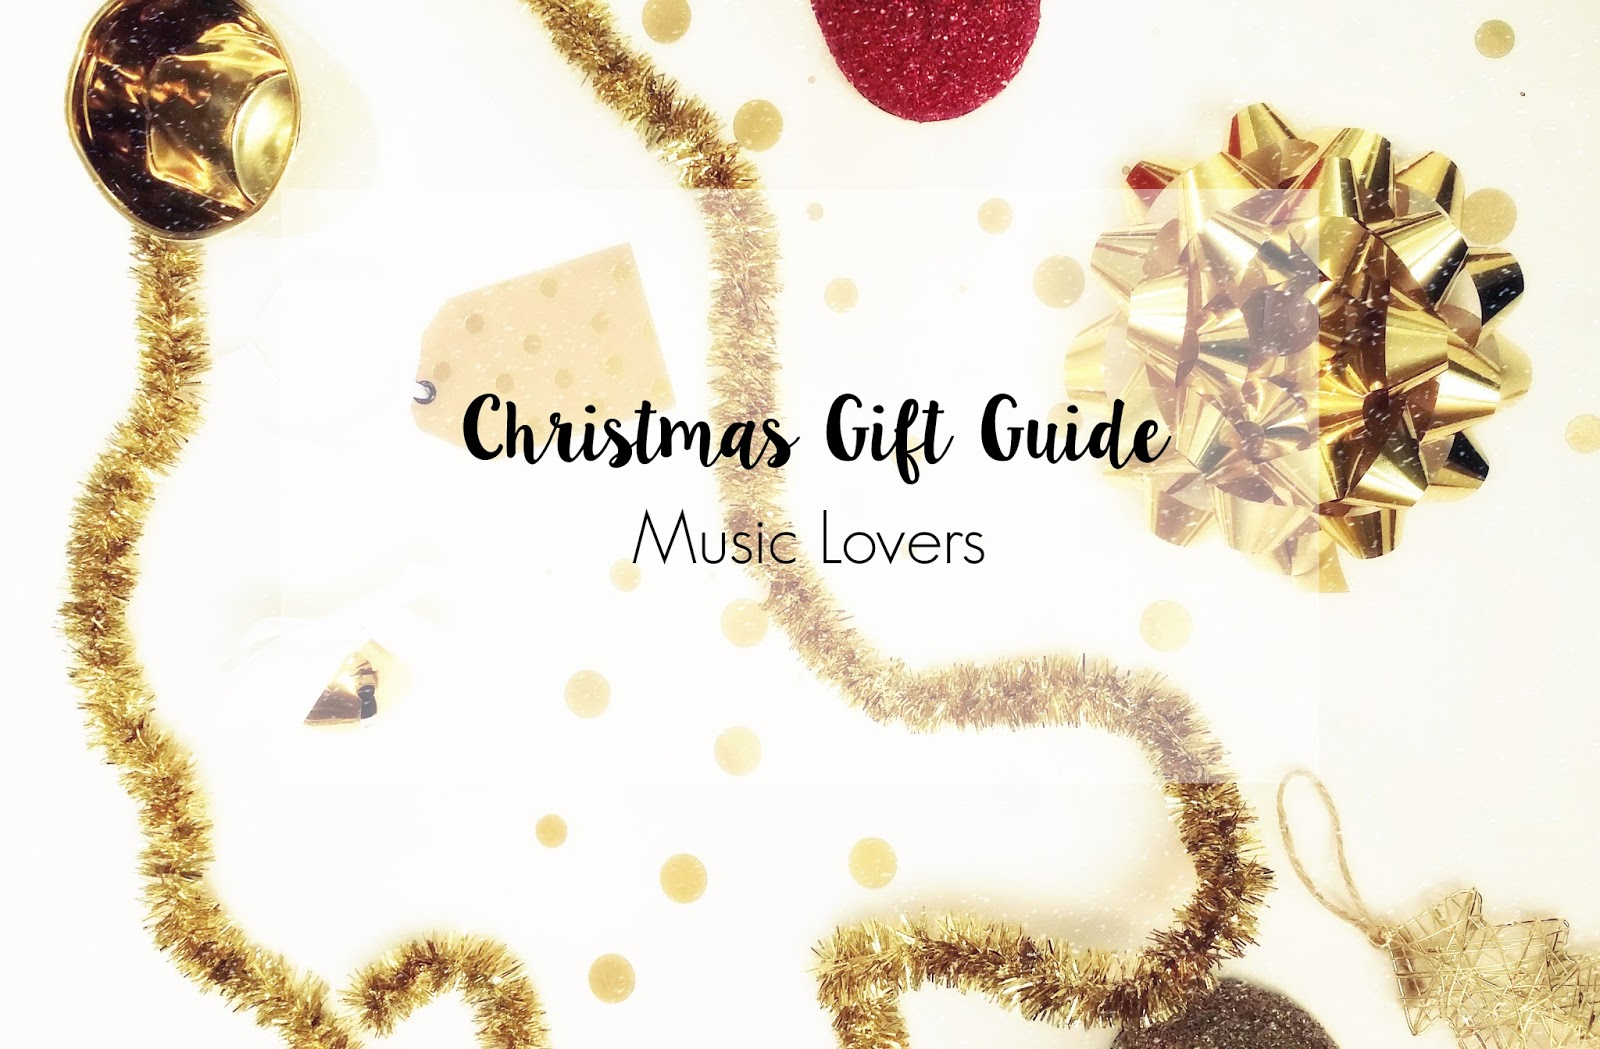 Christmas Gift Guide for Music Lovers